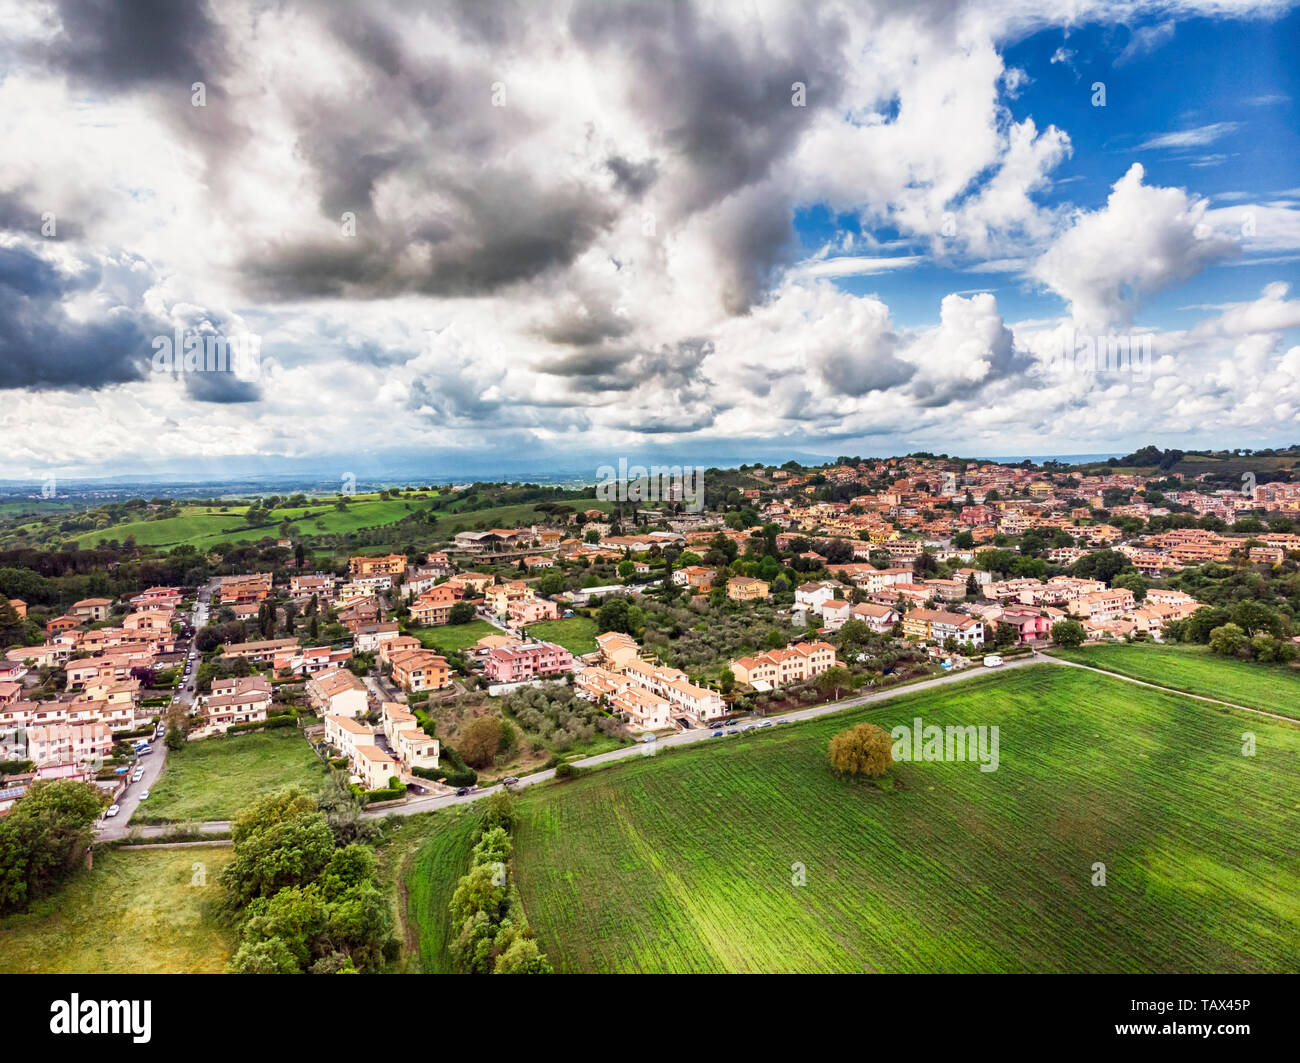 Showroom It Rignano Flaminio agriculture and urban environment from above stock photos